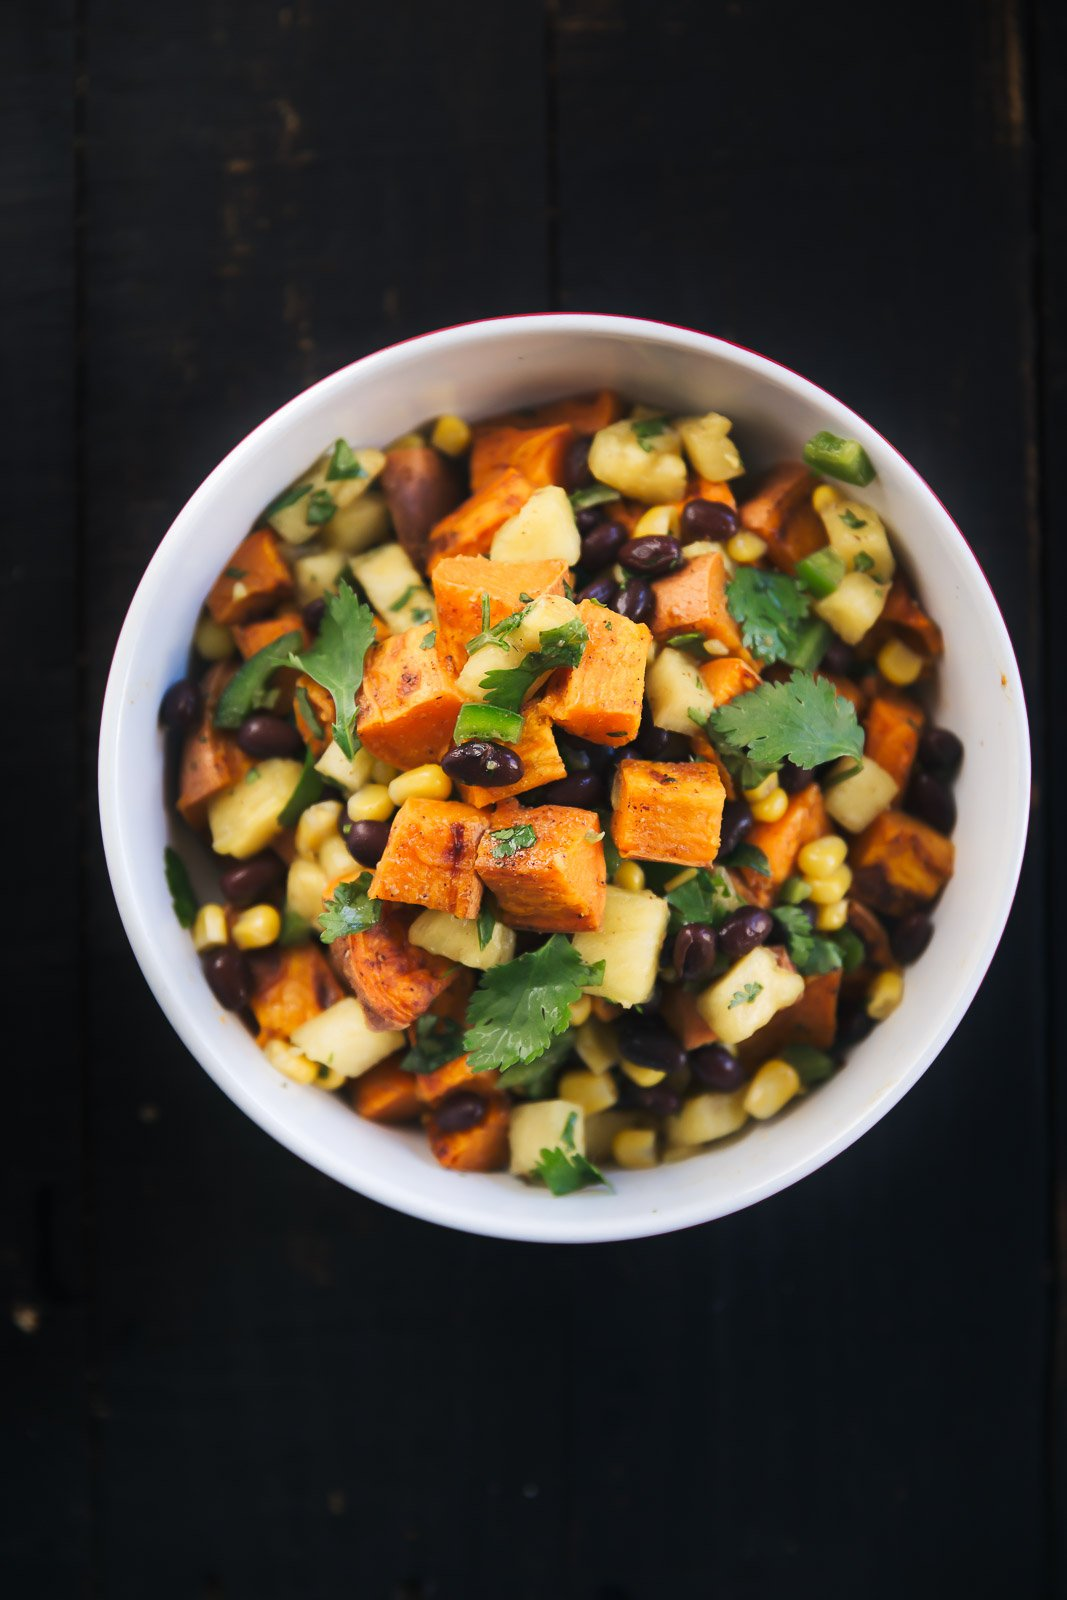 Vegetarian roasted sweet potato salad with black beans & a fresh sweet pineapple corn salsa. Perfect for potlucks & parties.